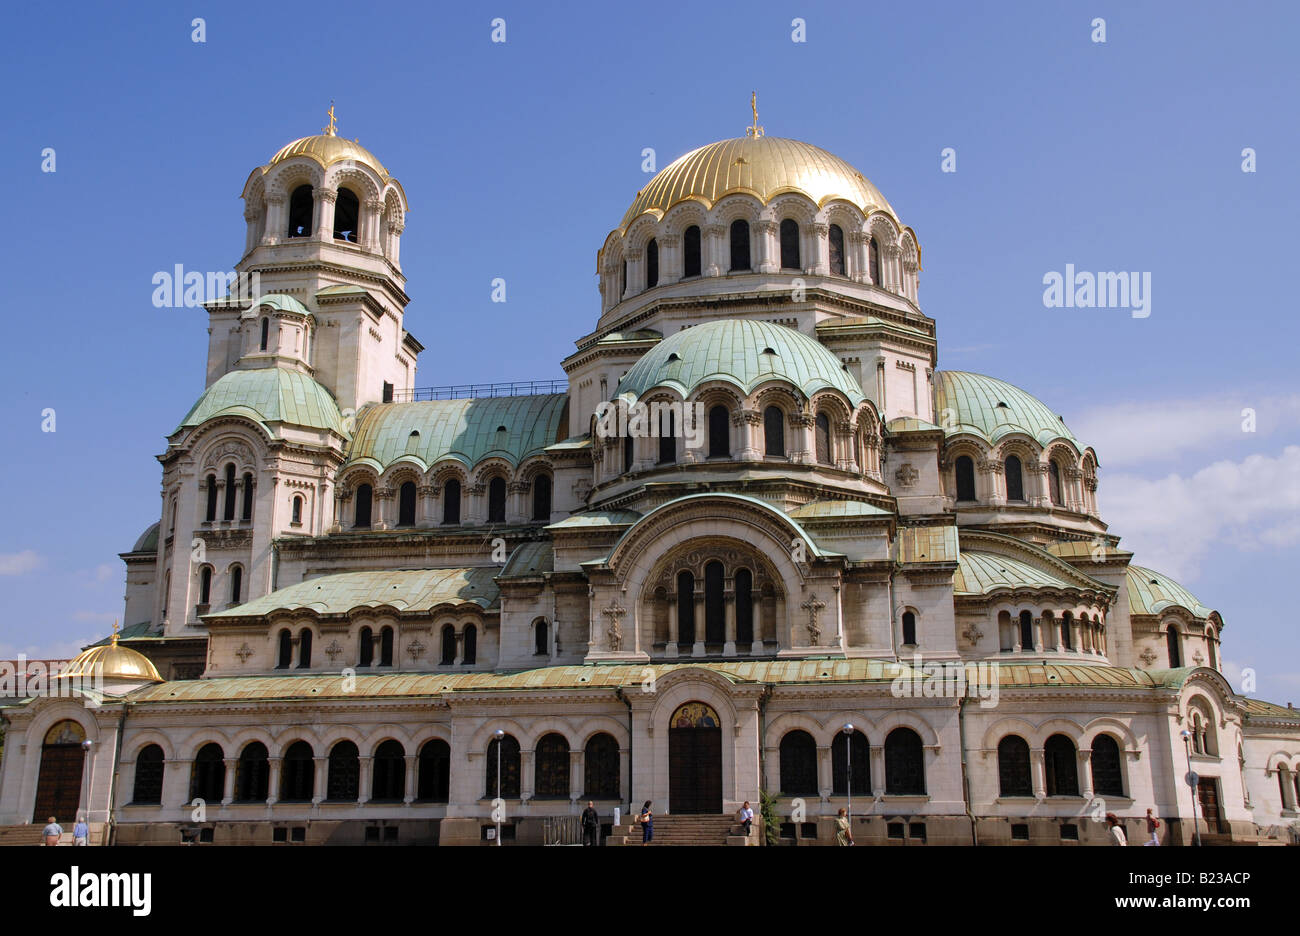 The Alexander Nevski cathedral in the centre of Sofia, Bulgaria. Stock Photo